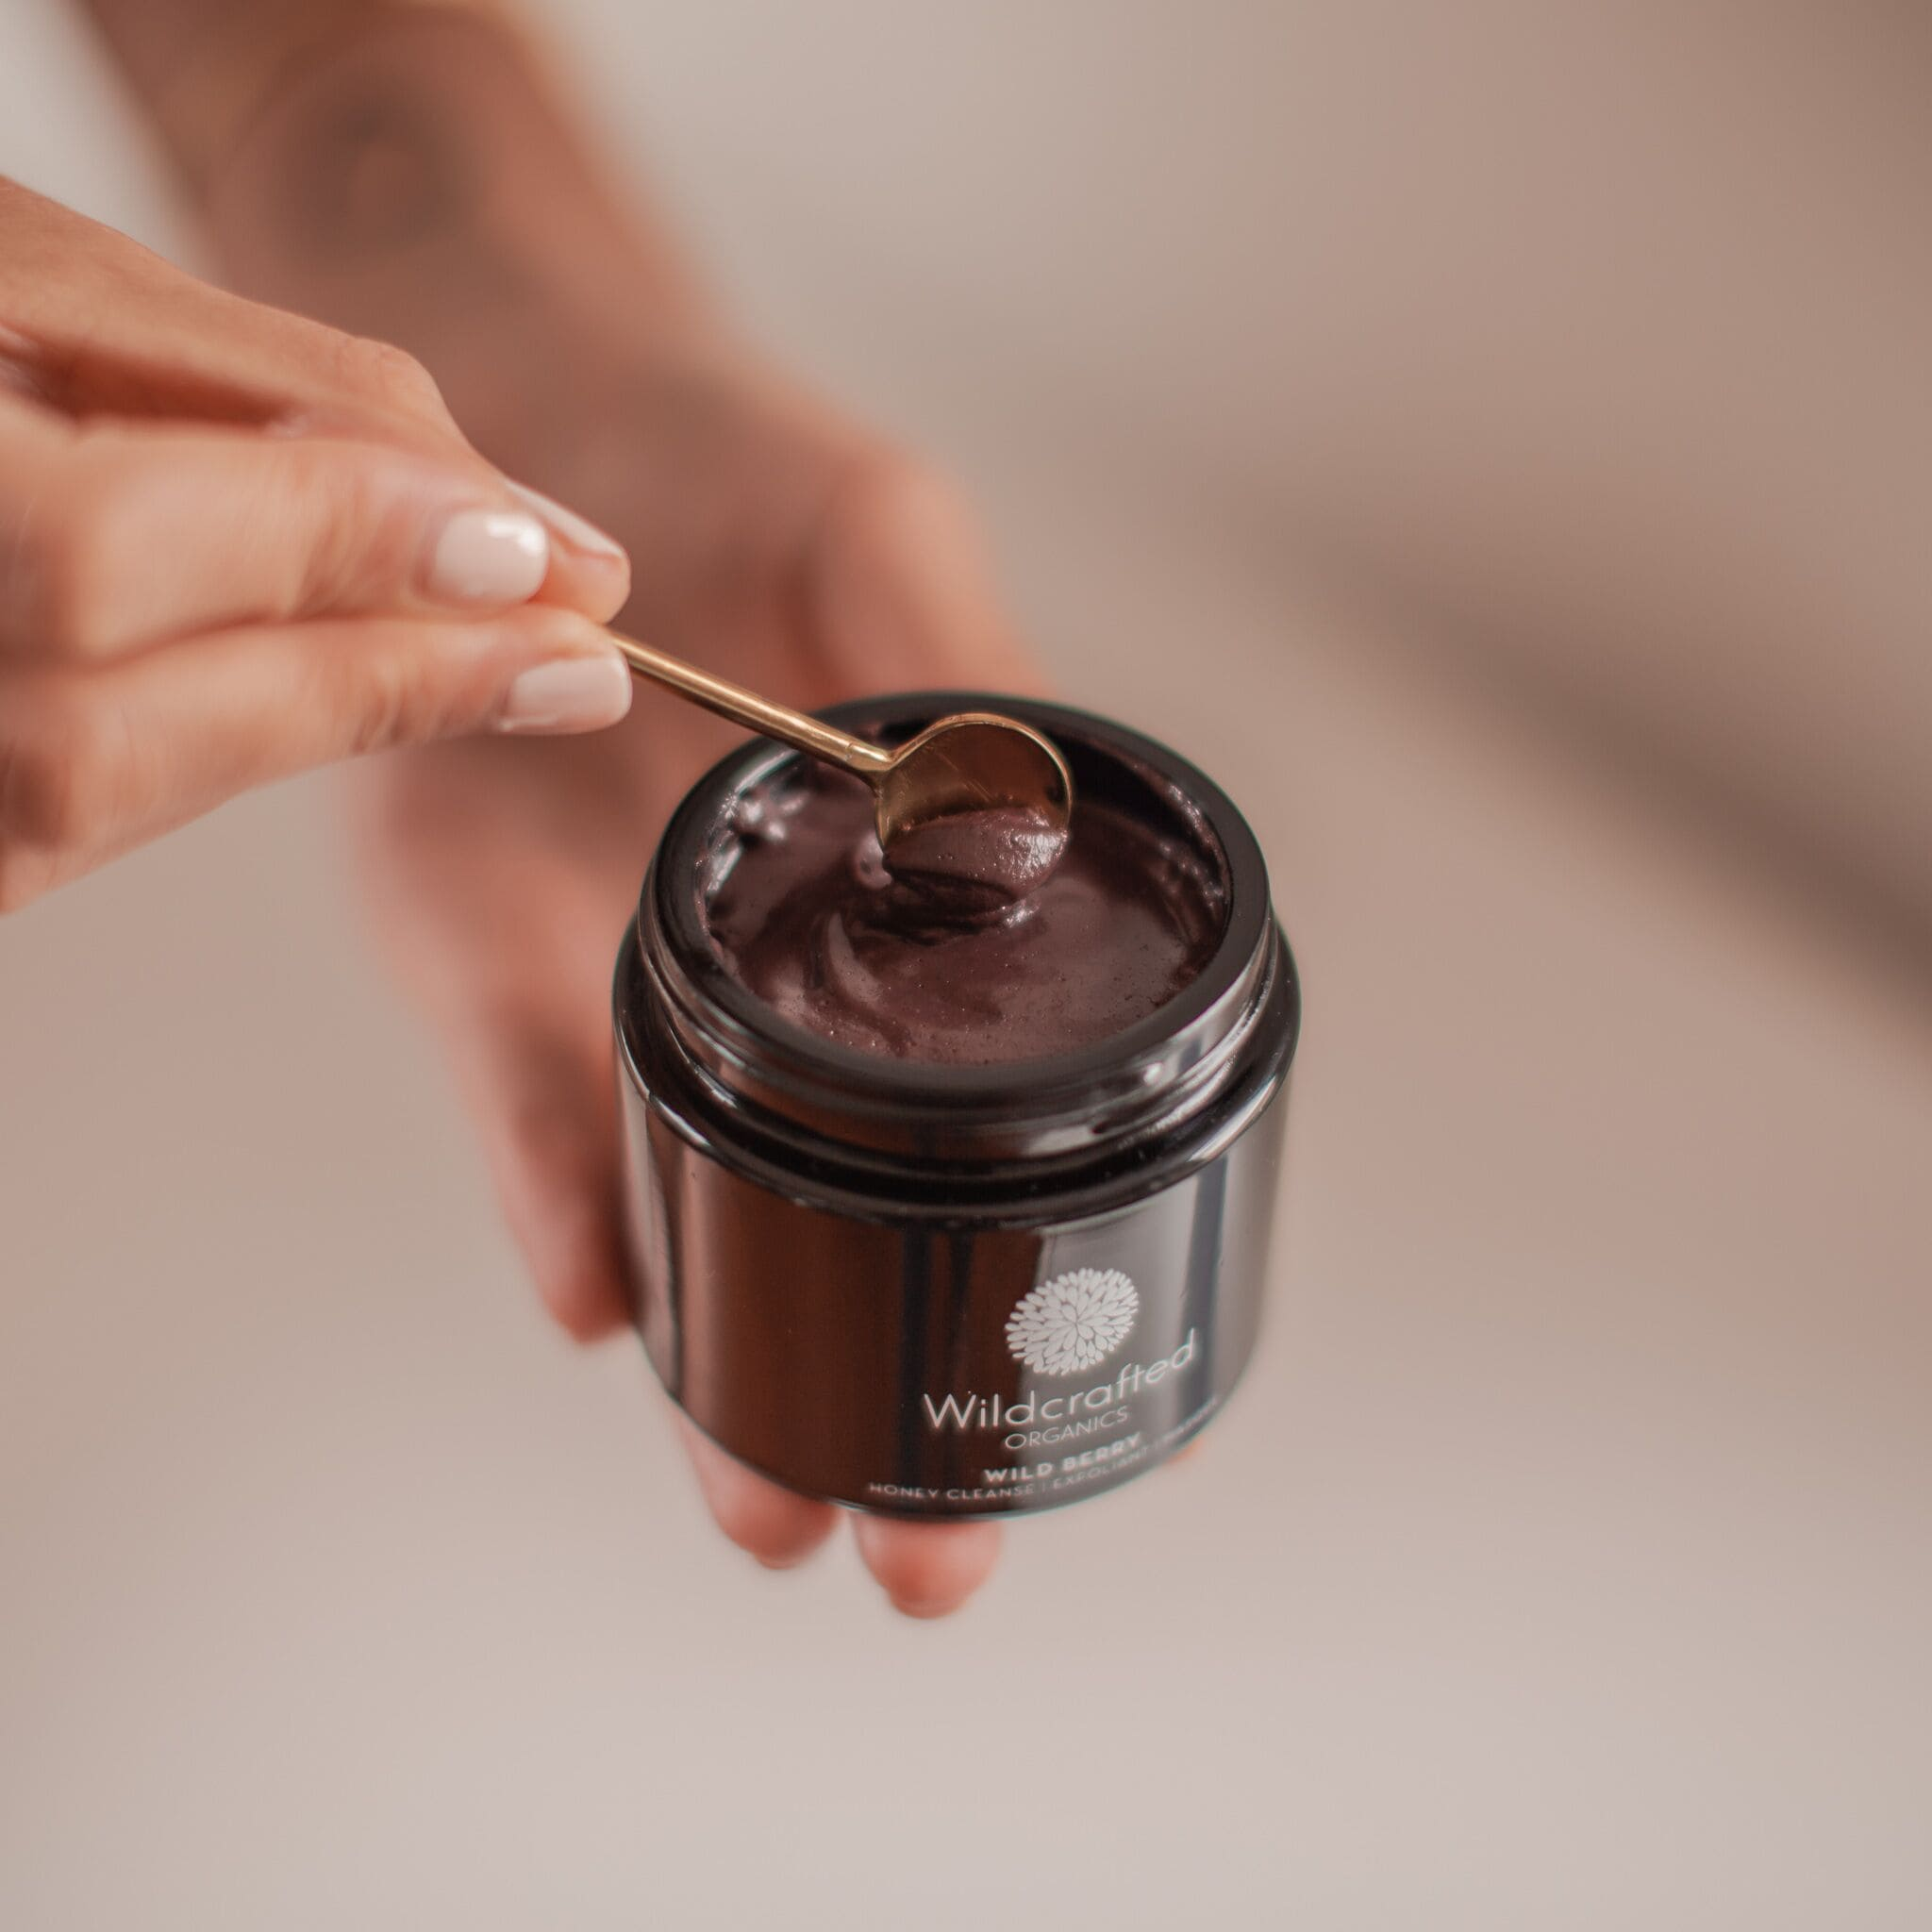 Wild Berry Honey Cleanse Mask